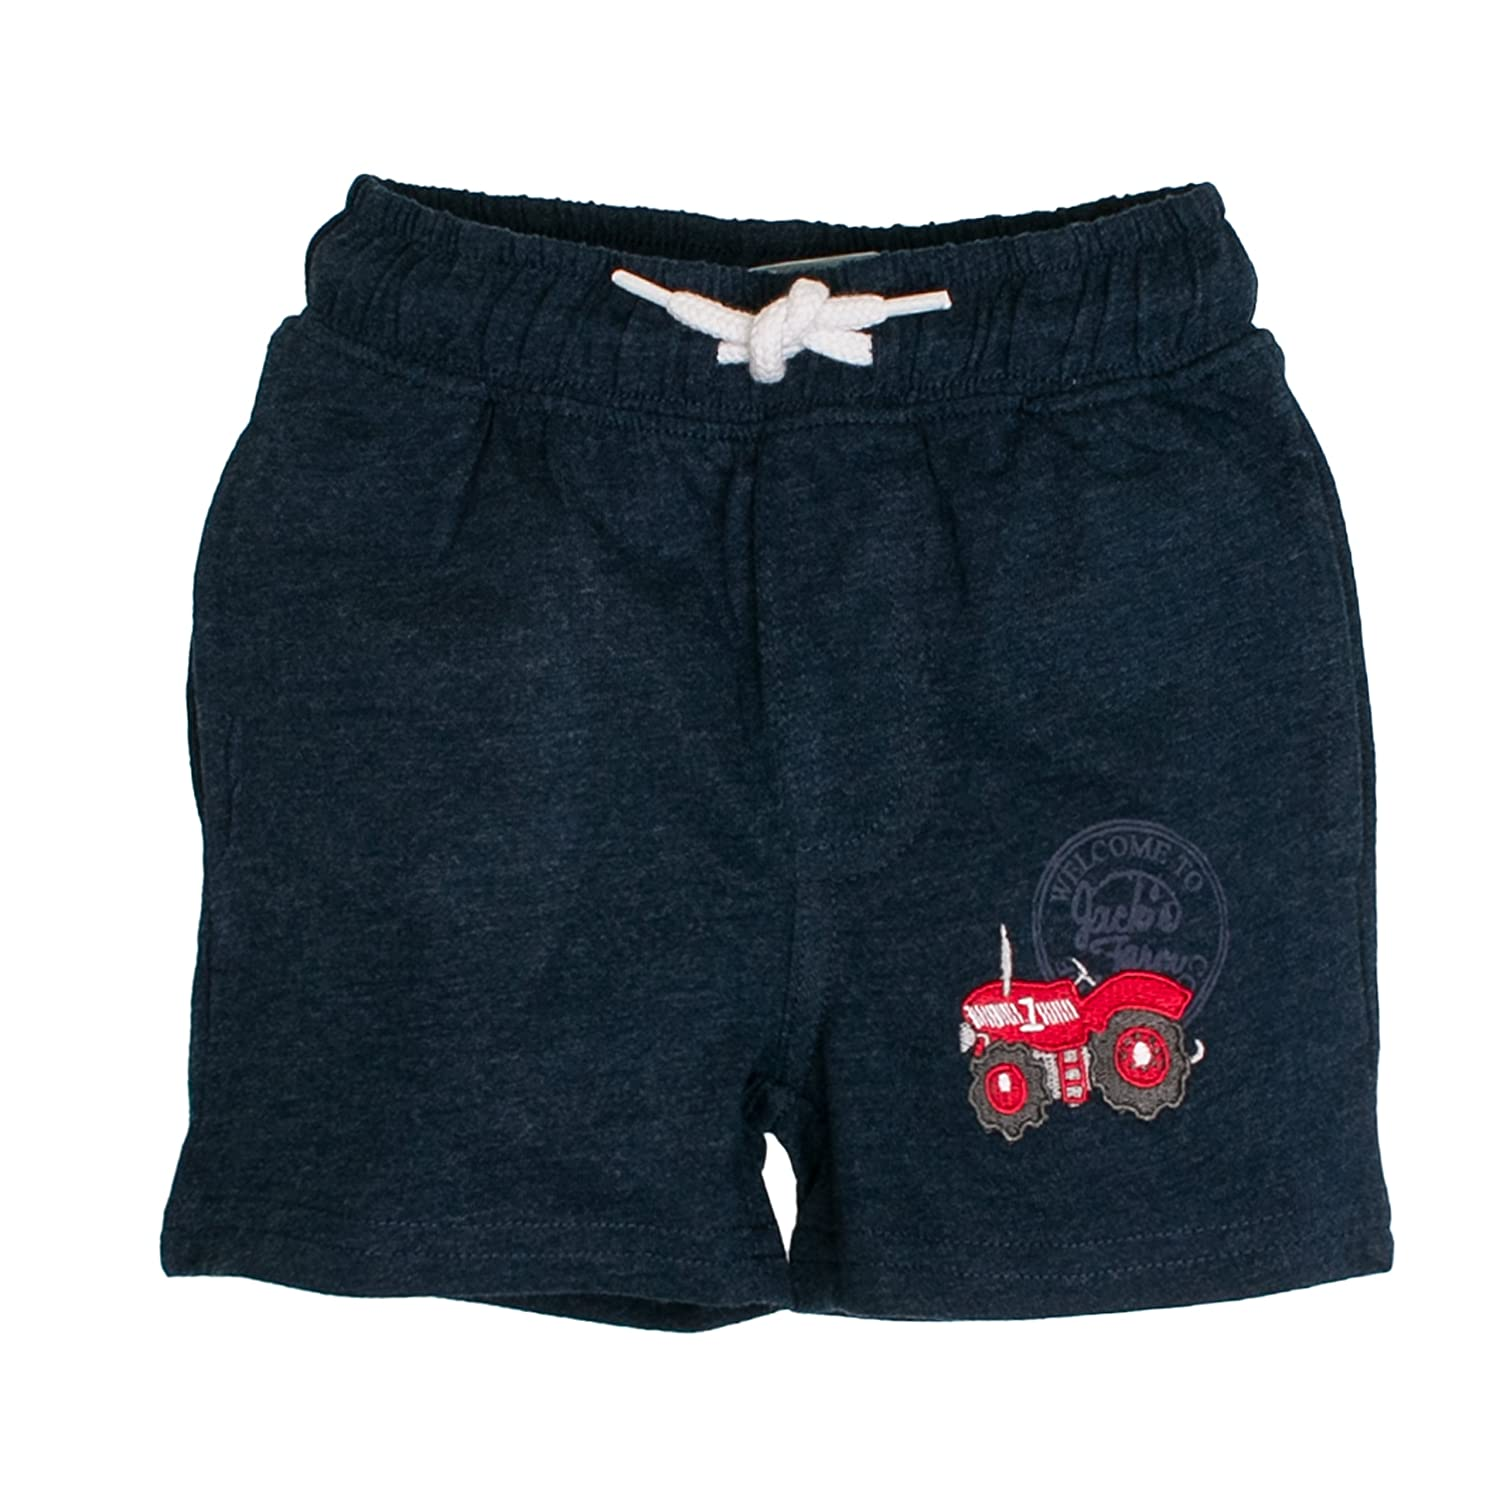 Salt & Pepper Baby Boys' B Bermuda L. Farm Uni Shorts SALT AND PEPPER 73216126